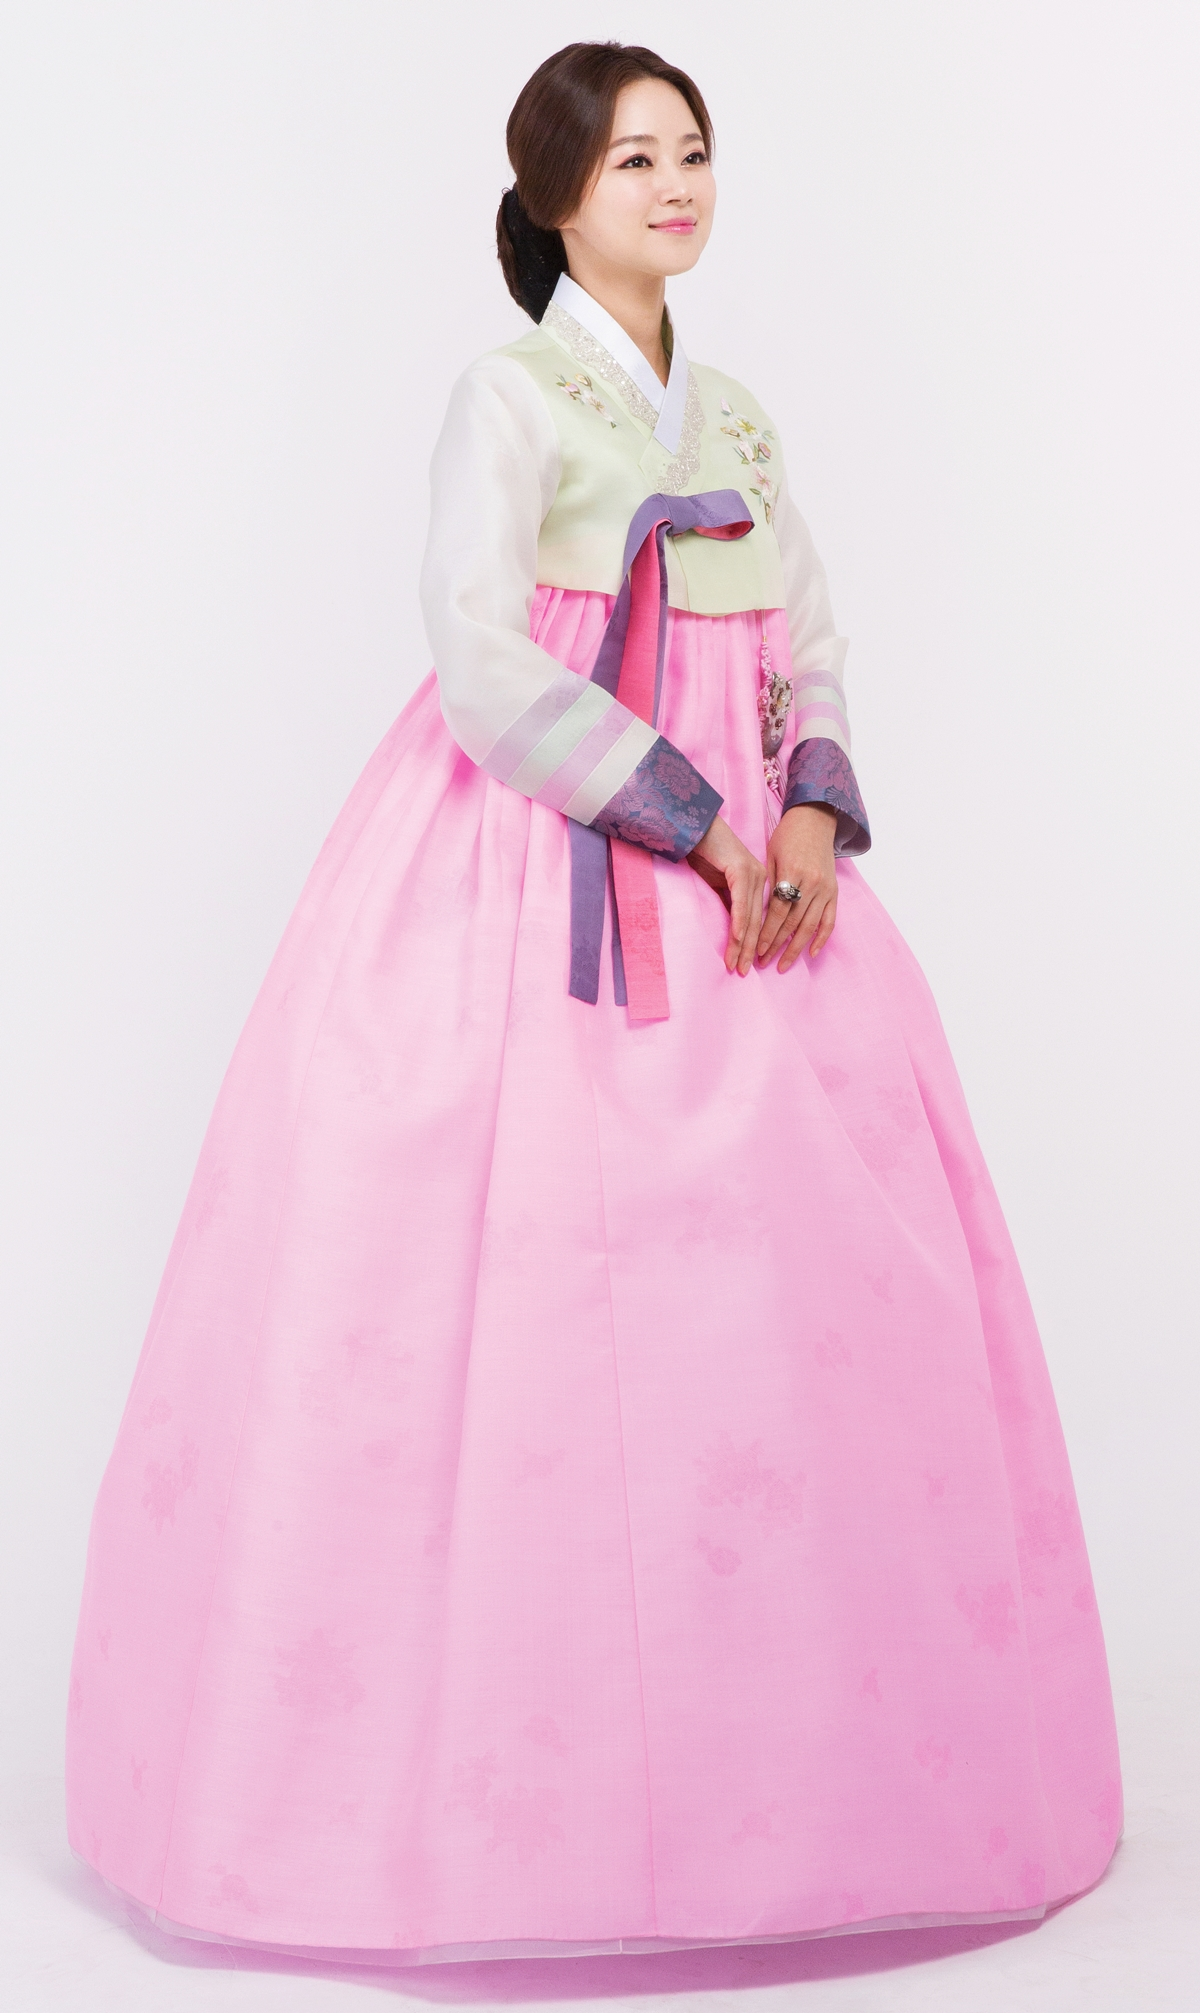 Korean Traditional Hanbok Dress For Wedding